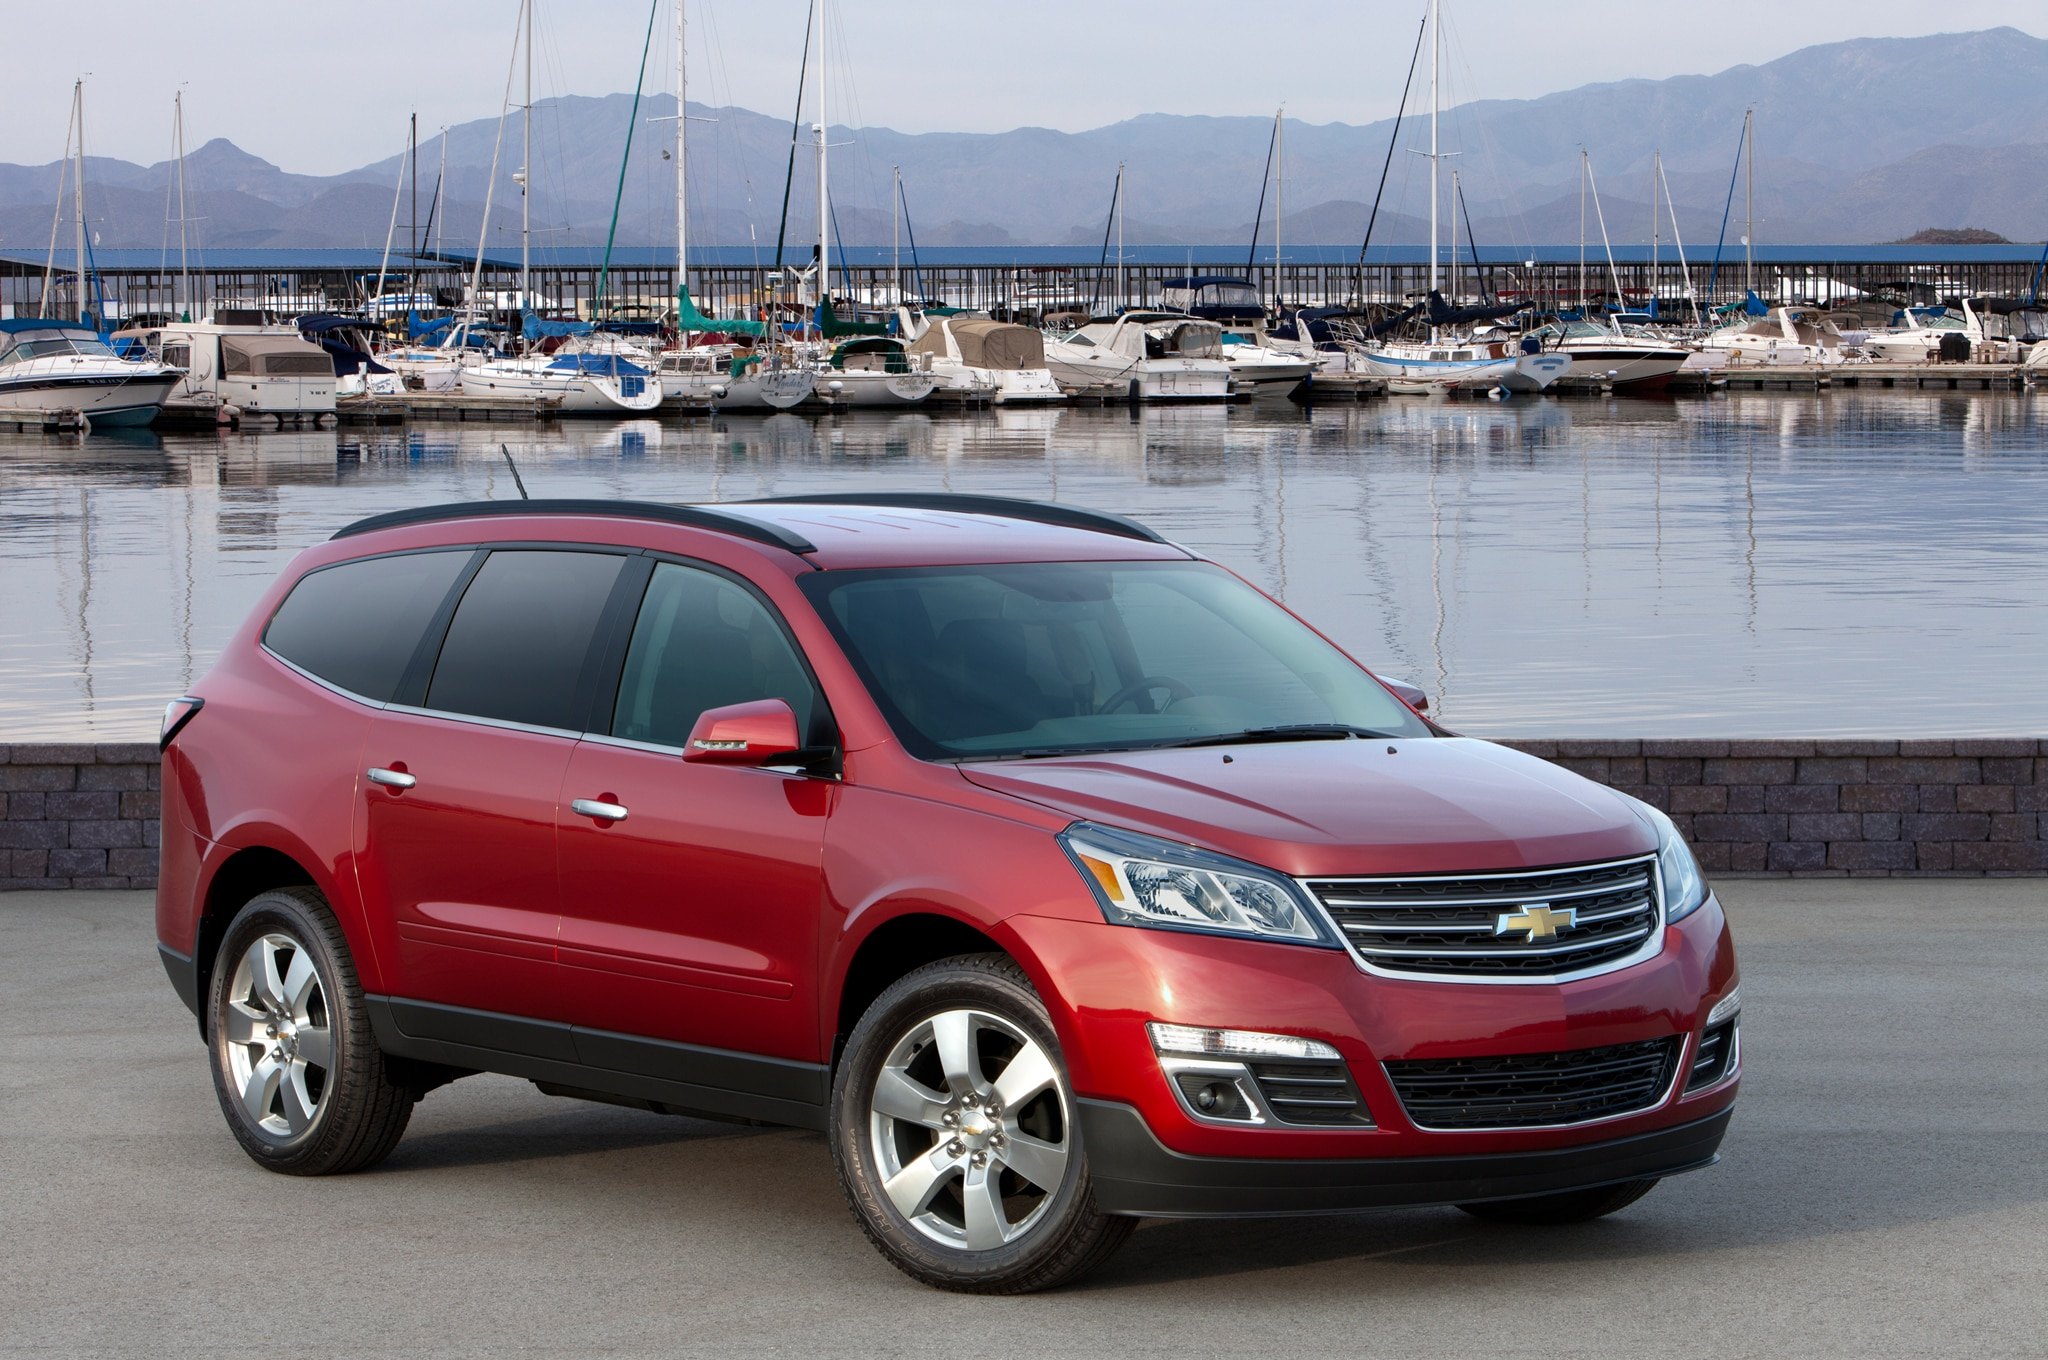 2013 Chevrolet Traverse Three Quarters View1